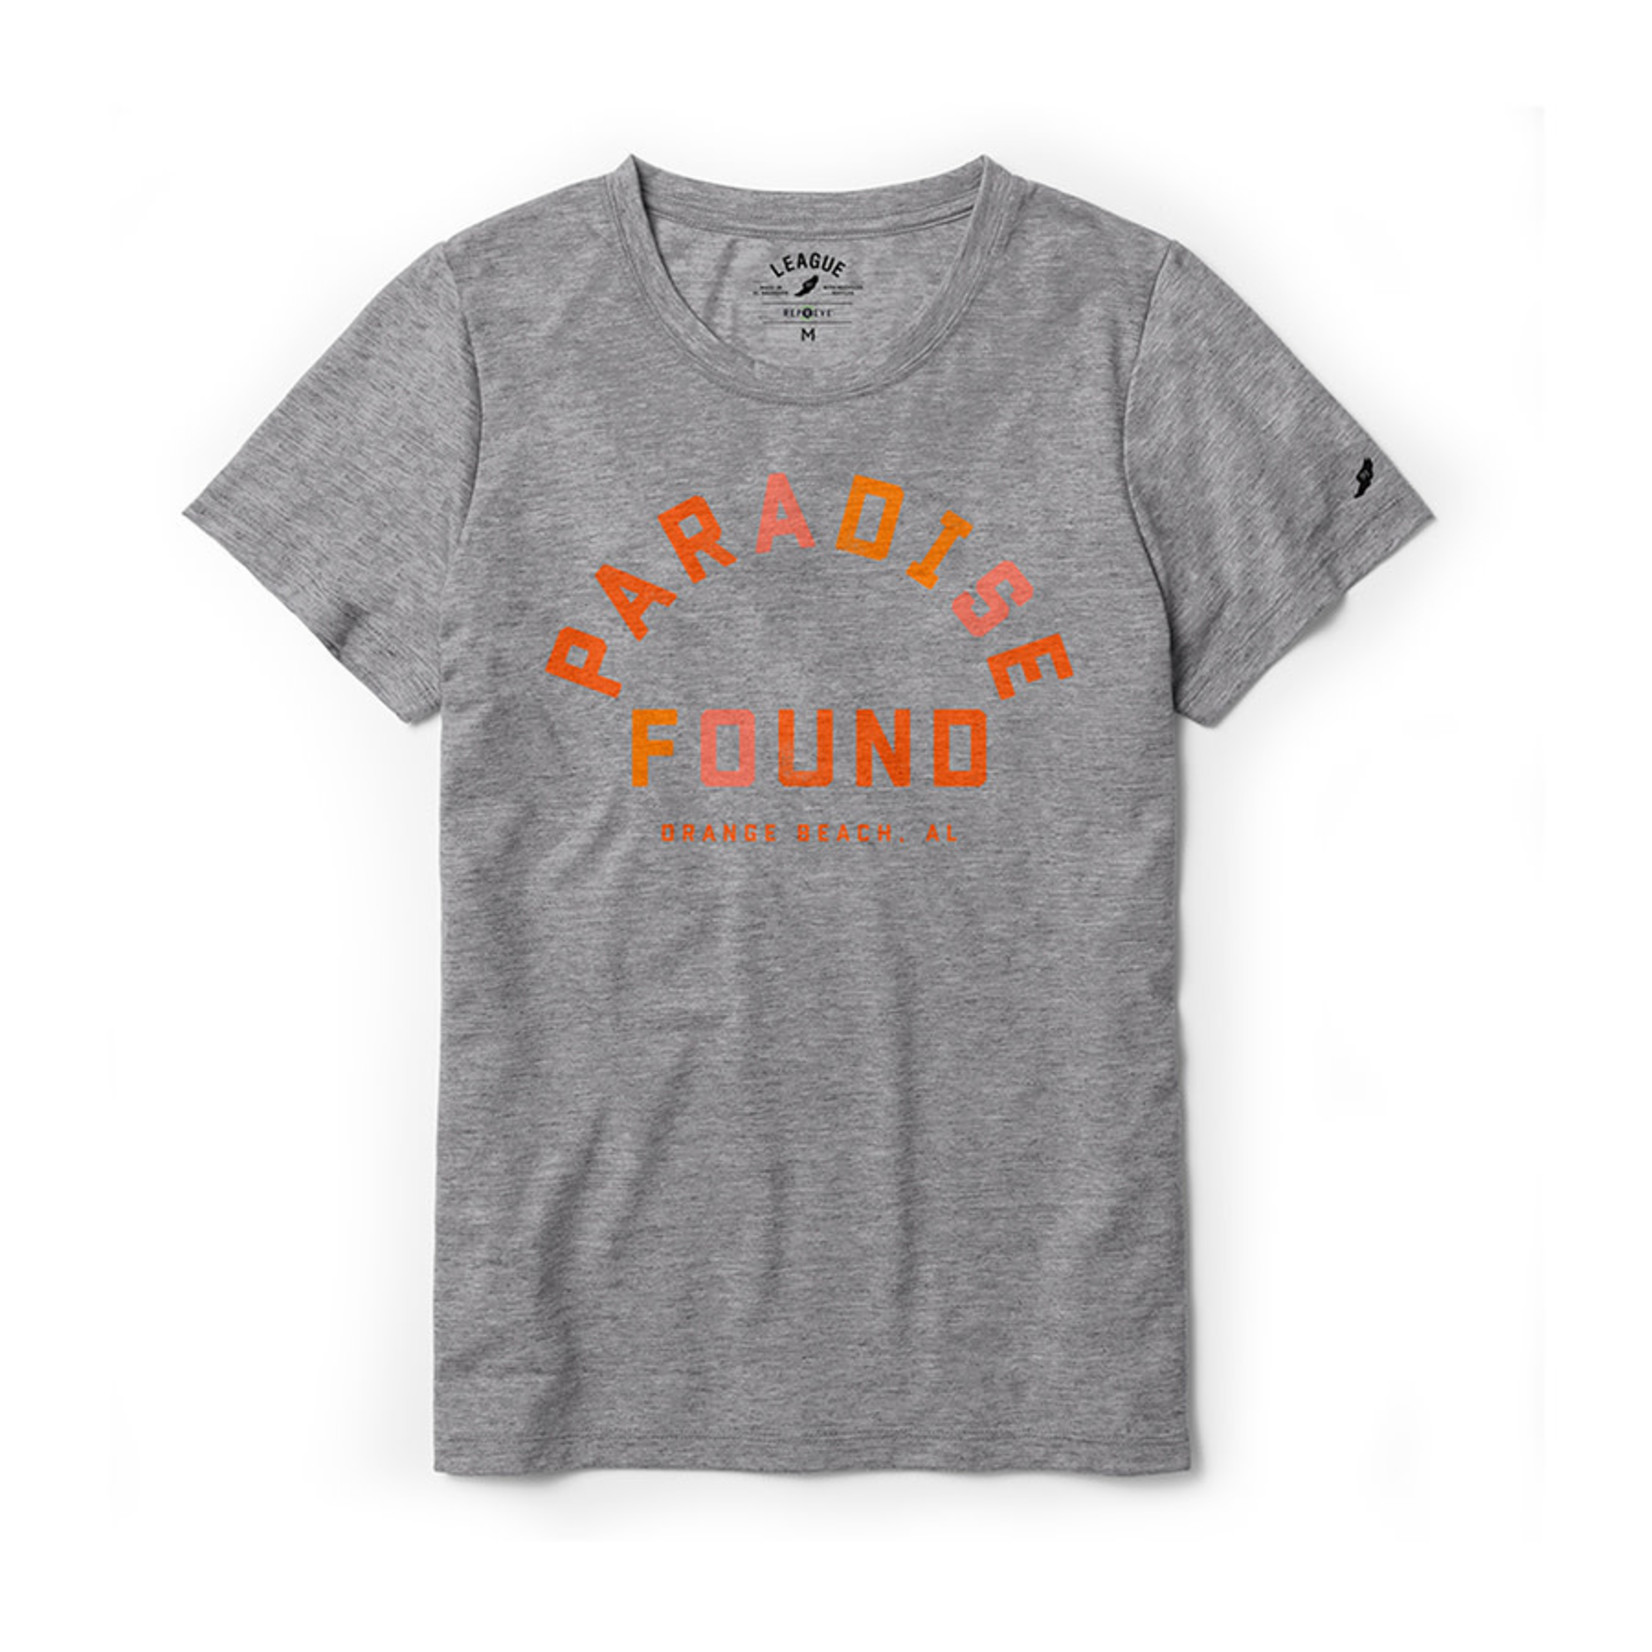 L2 Brands Paradise Found Tee